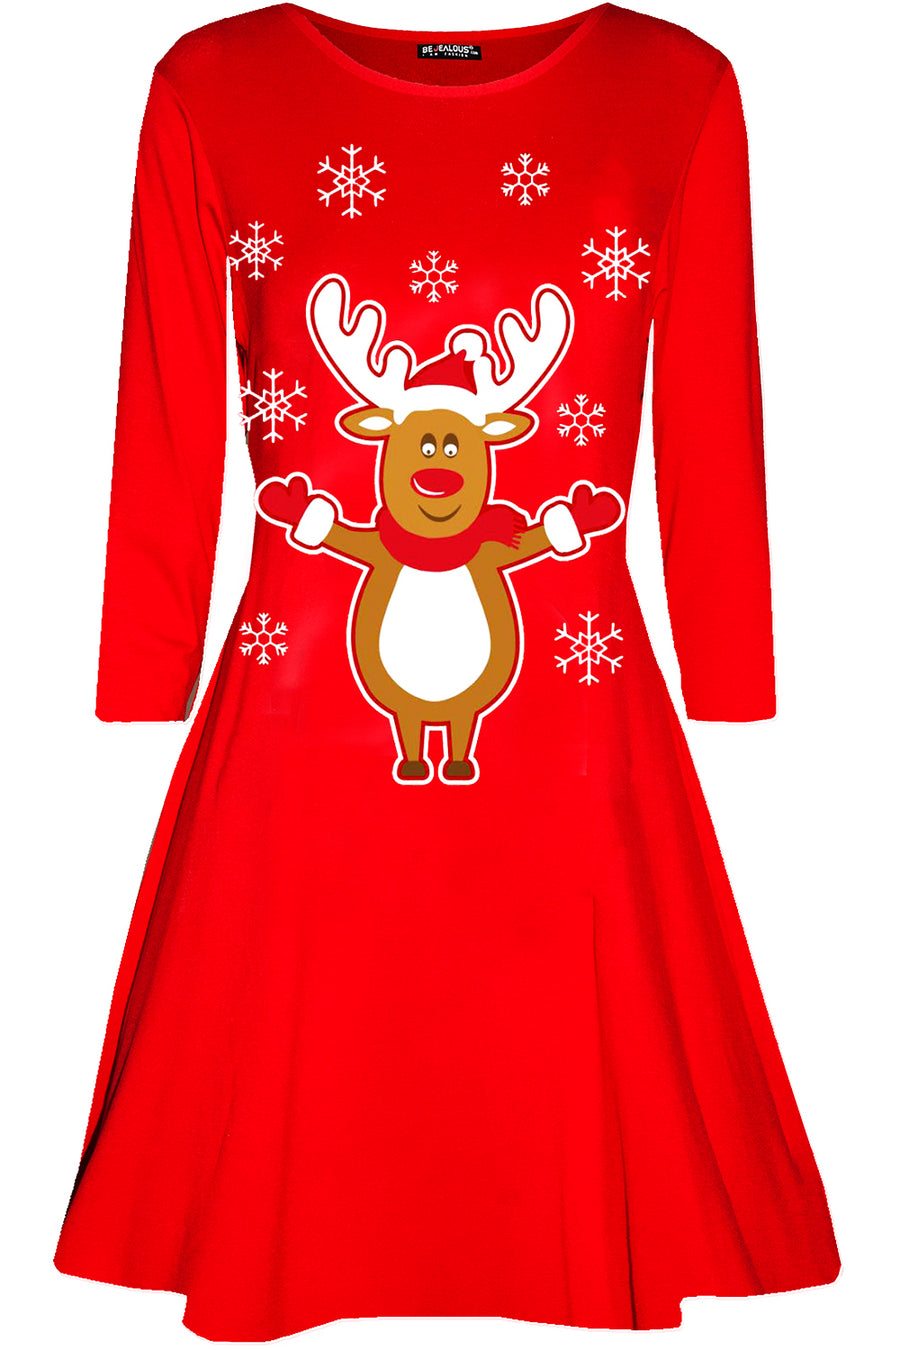 Long Sleeve Reindeer Print Mini Dress - bejealous-com